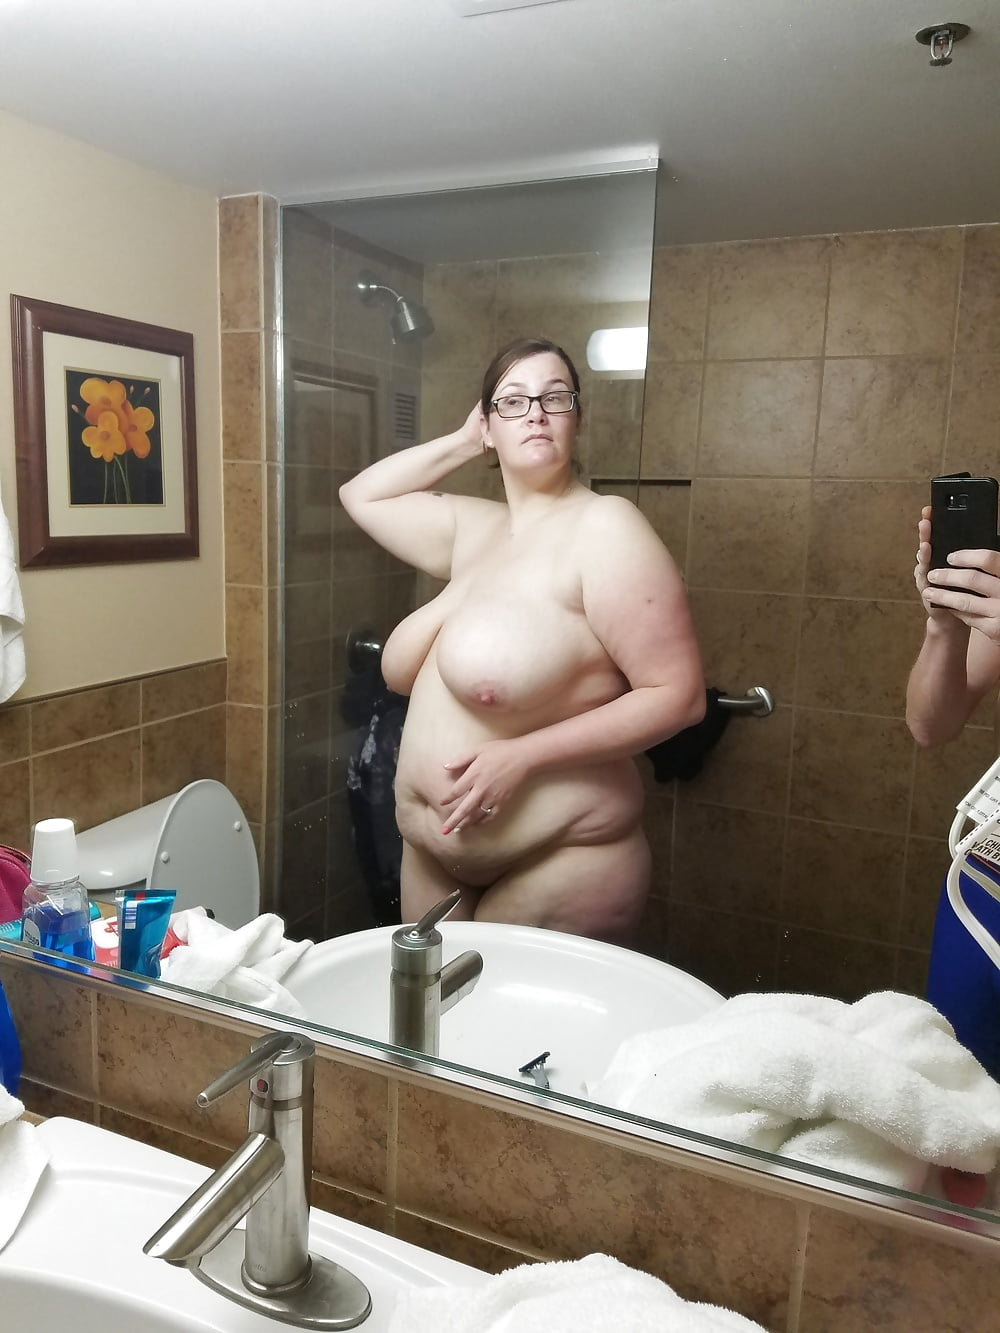 Funny ugly naked pics in the shower — photo 6